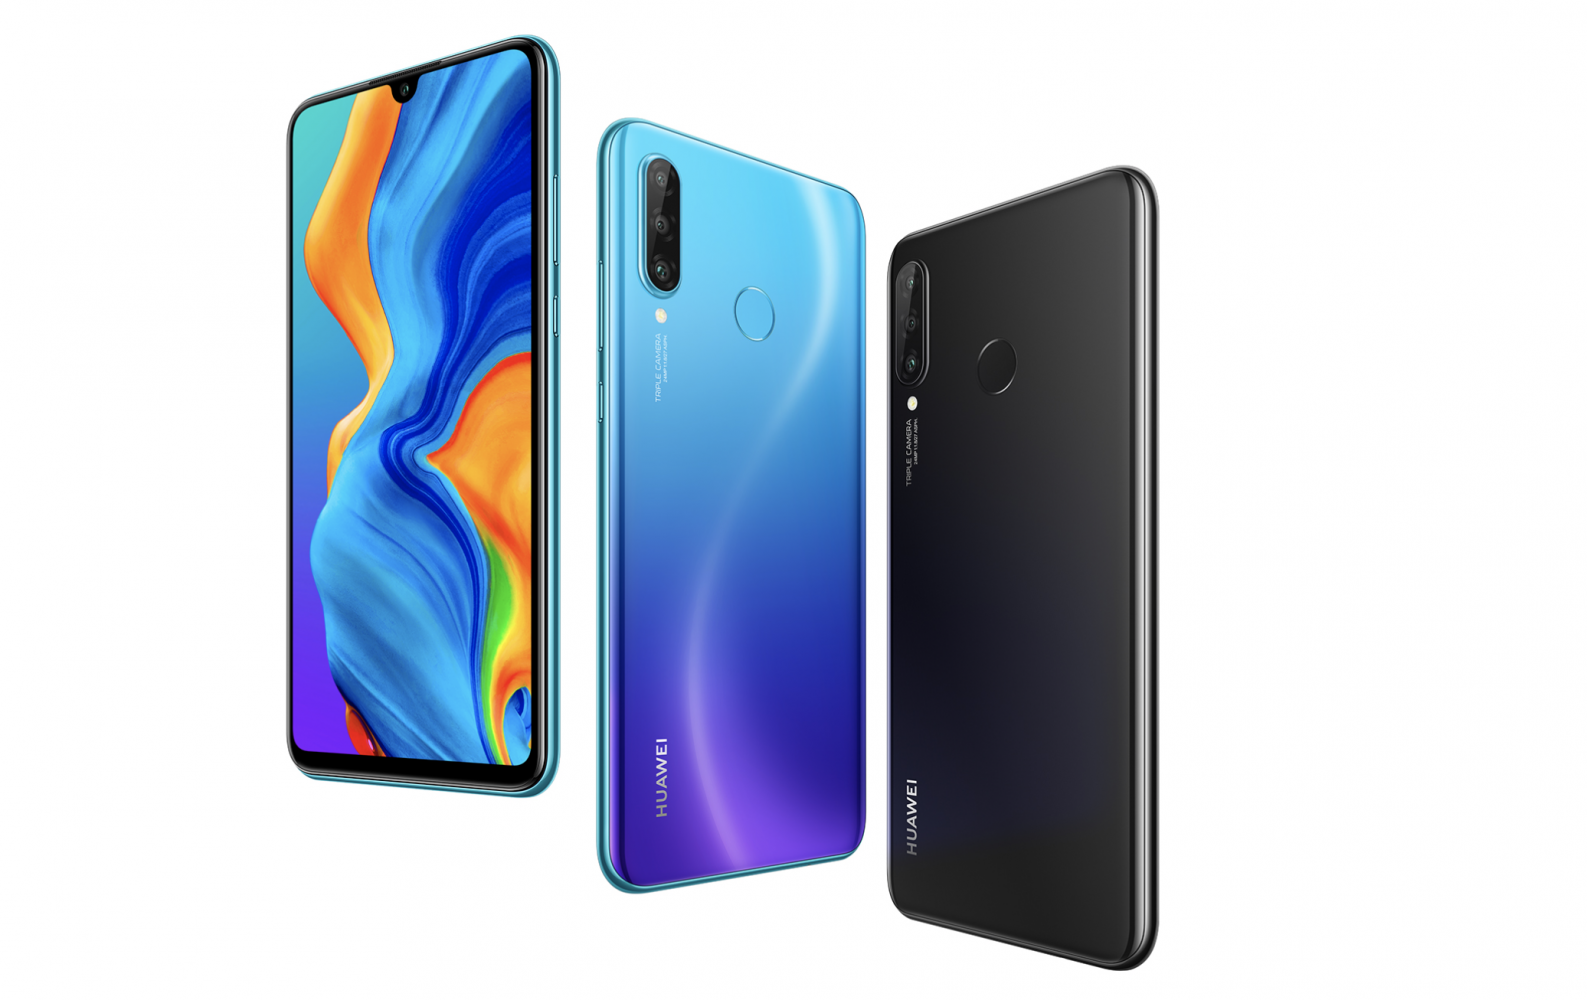 Huawei brings its super camera phones Huawei P30 series to the